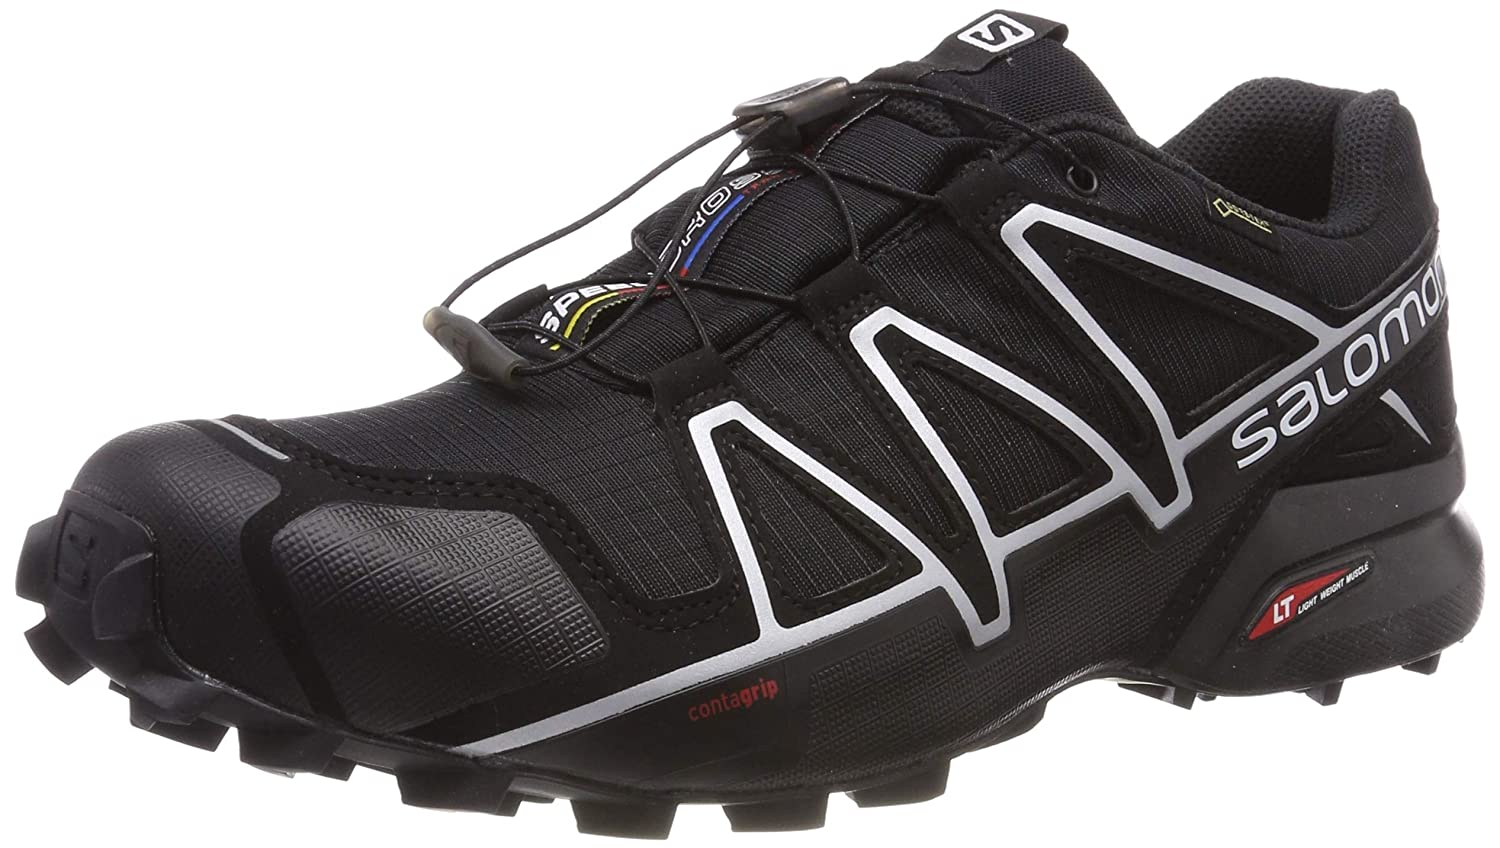 [サロモン] トレイルランニングシューズ SPEEDCROSS 4 US GTX メンズ B01G7UFDDA Black Metallic/Black w//Silver Metallic X w/ Sock 9 D(M) US 9 D(M) US|Black/Black/Silver Metallic X w/ Sock, トヨオカシ:d6bc0d2b --- specialitysoldasespeciais.com.br